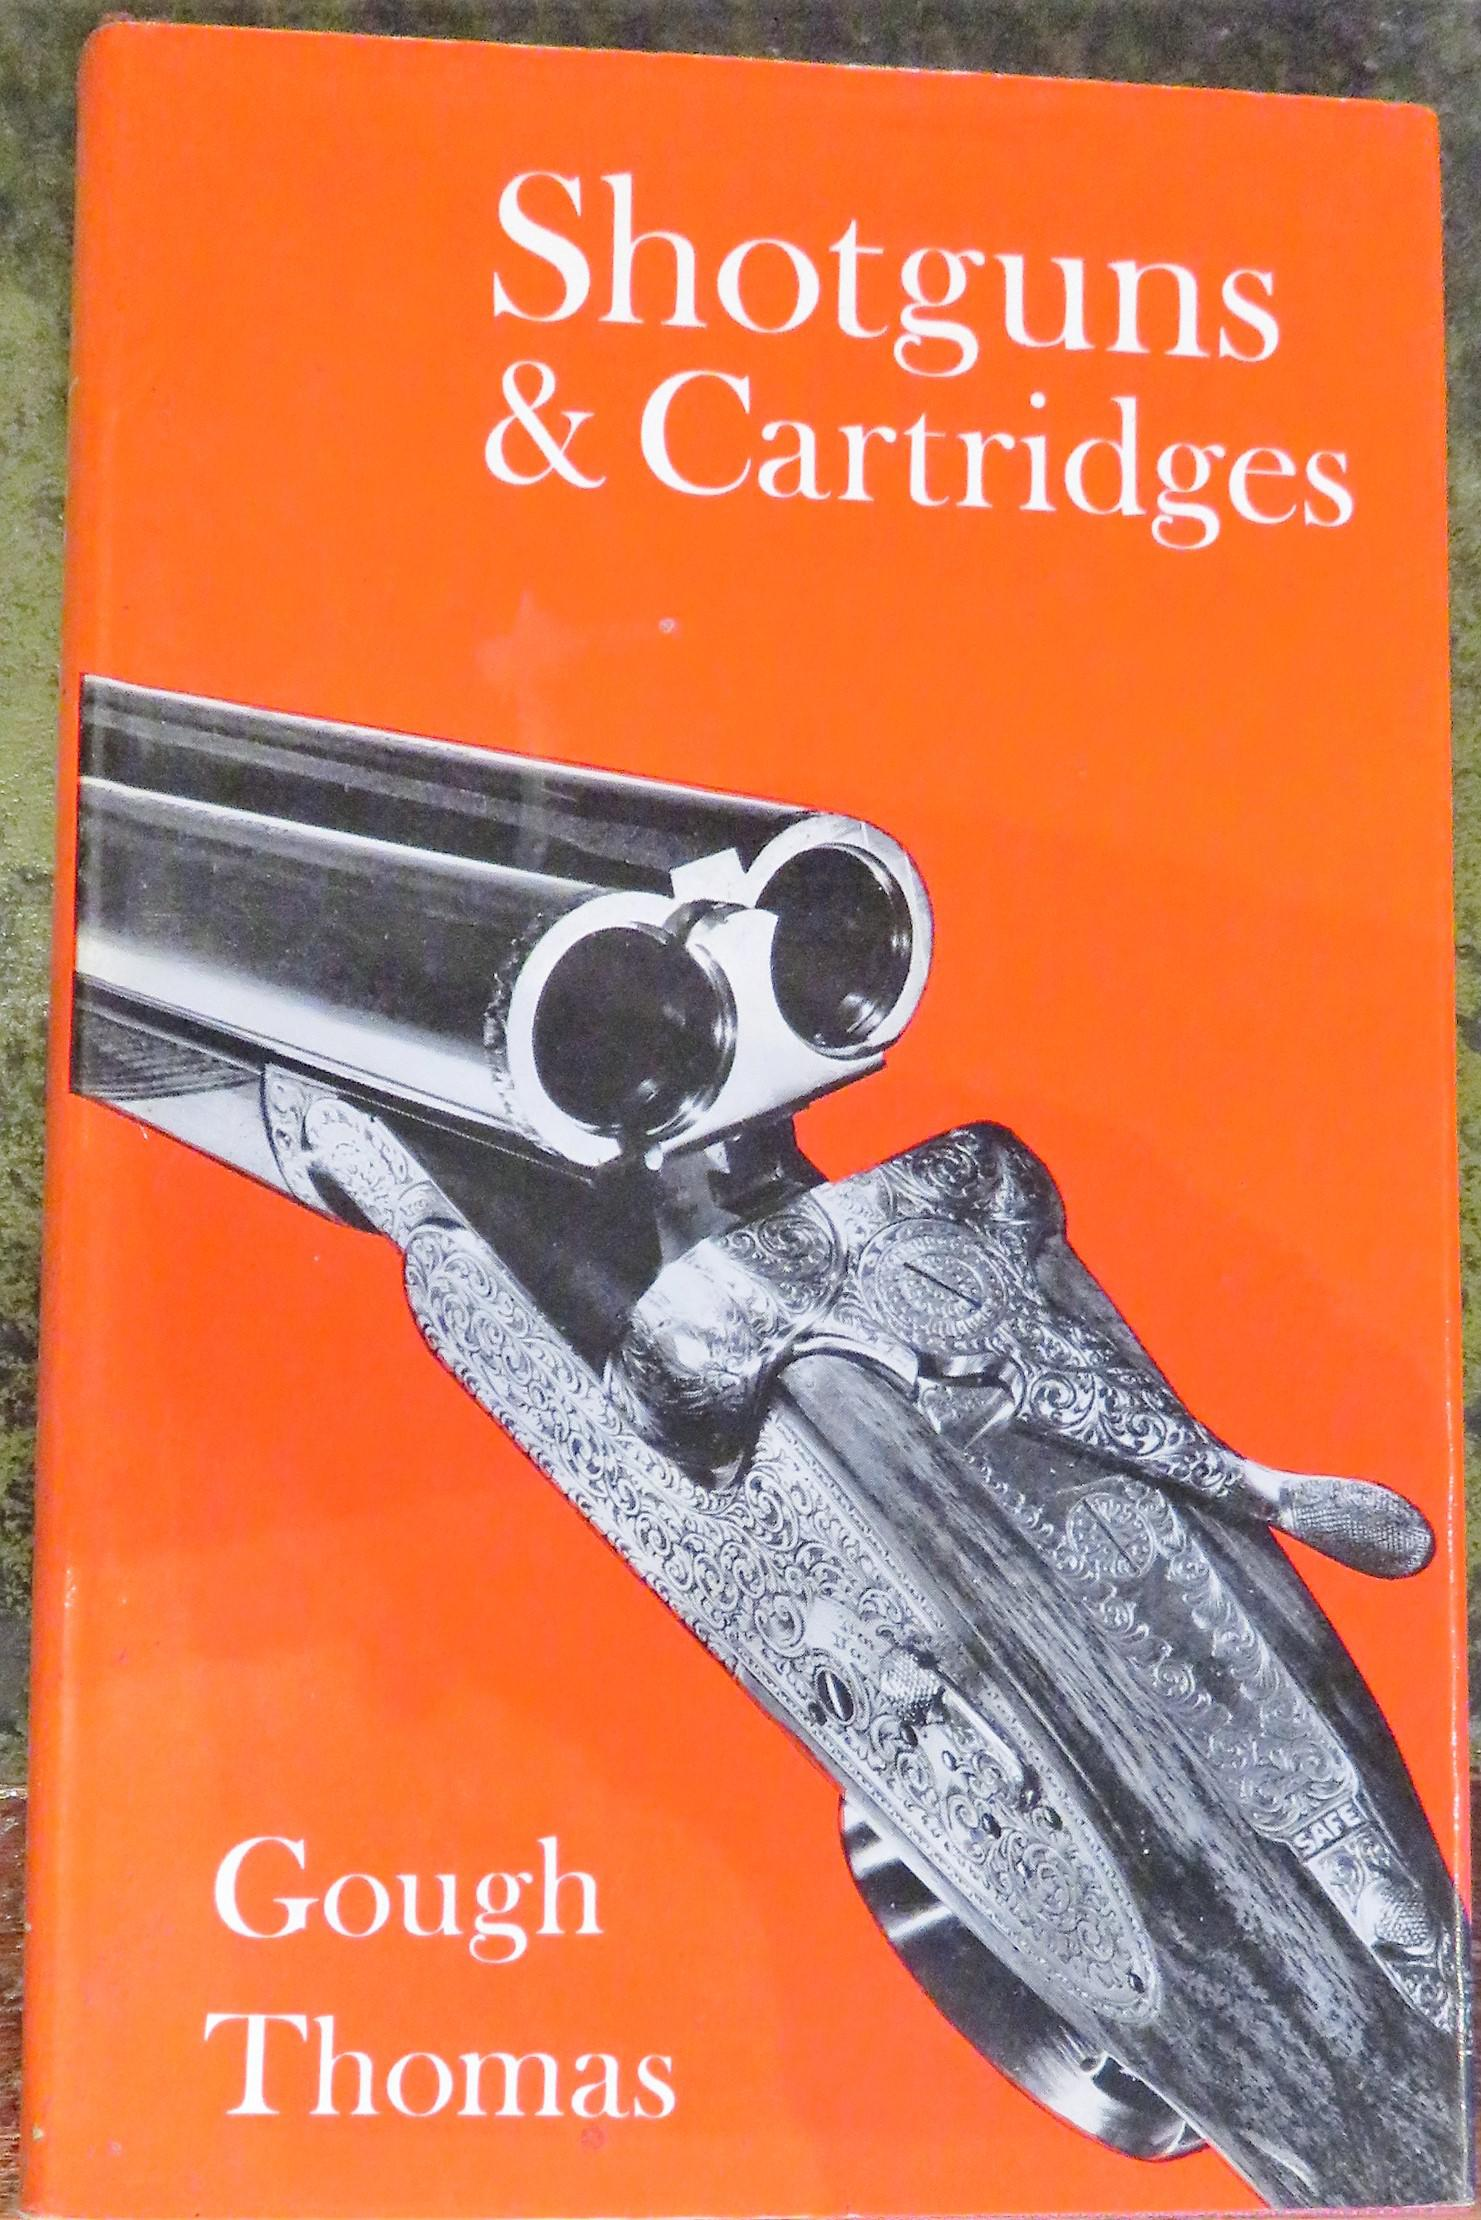 Shotguns and Cartridges